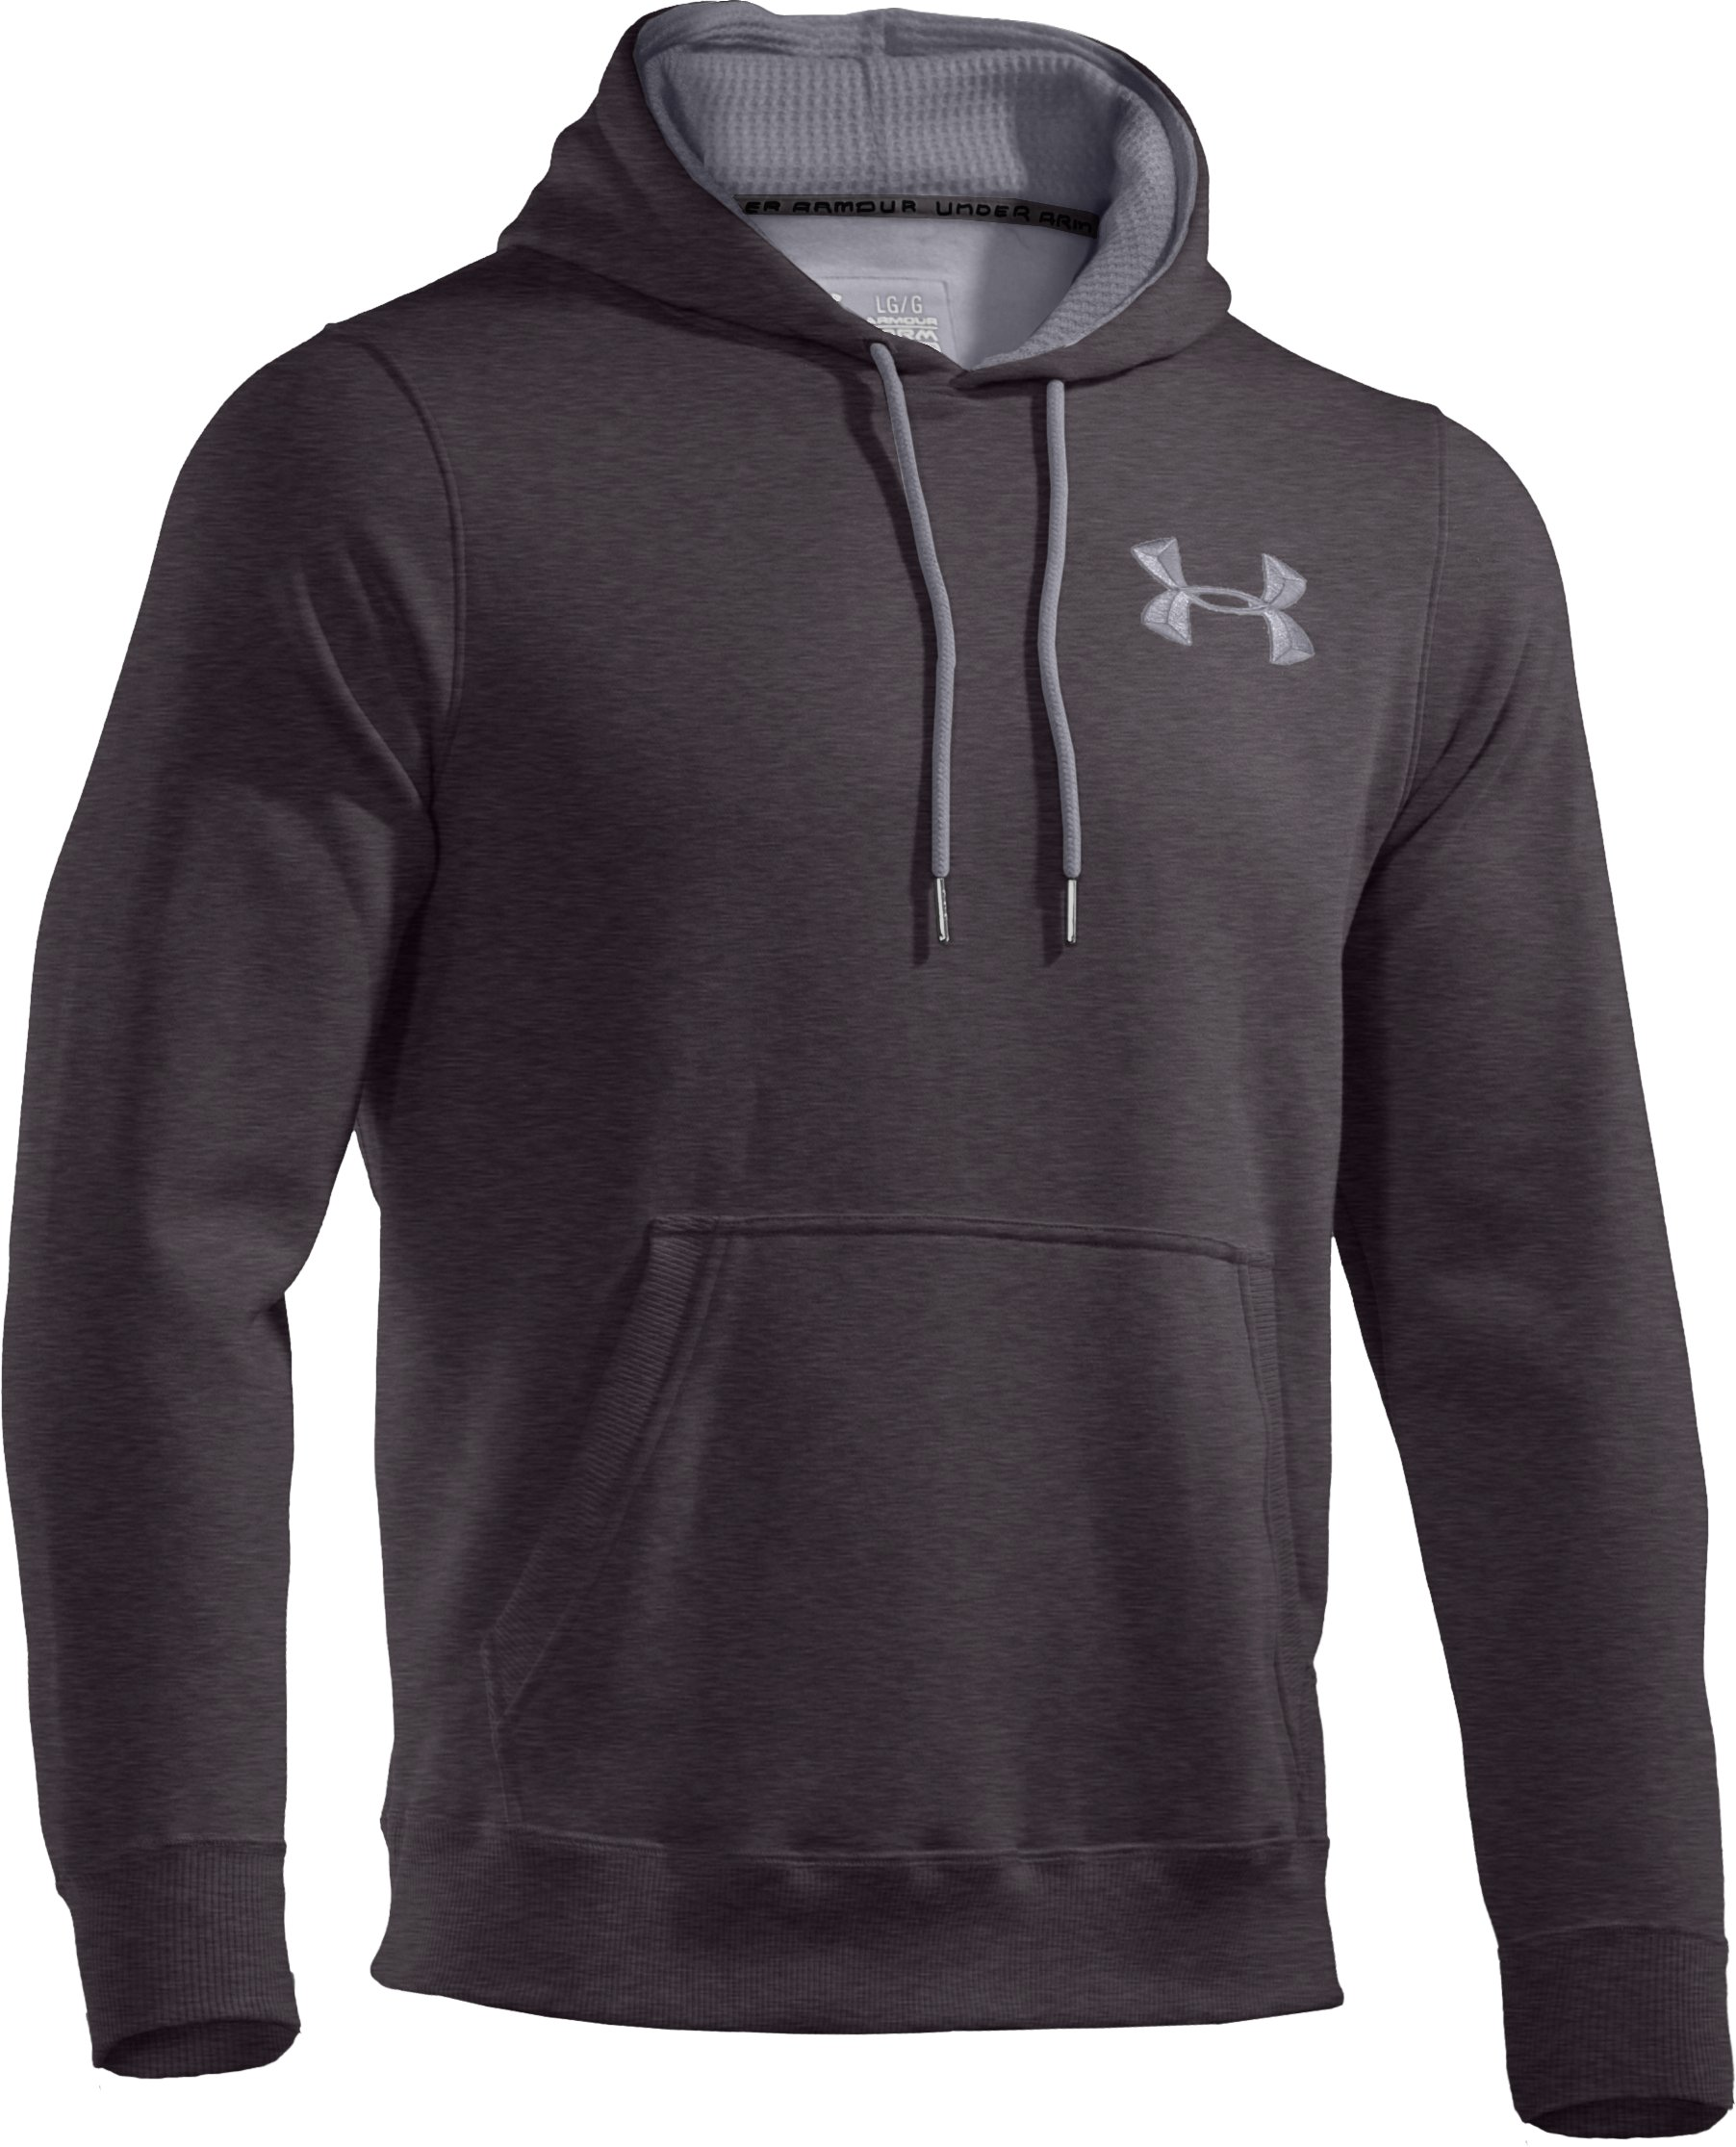 Men's Charged Cotton® Storm Pullover Hoodie, Carbon Heather, undefined